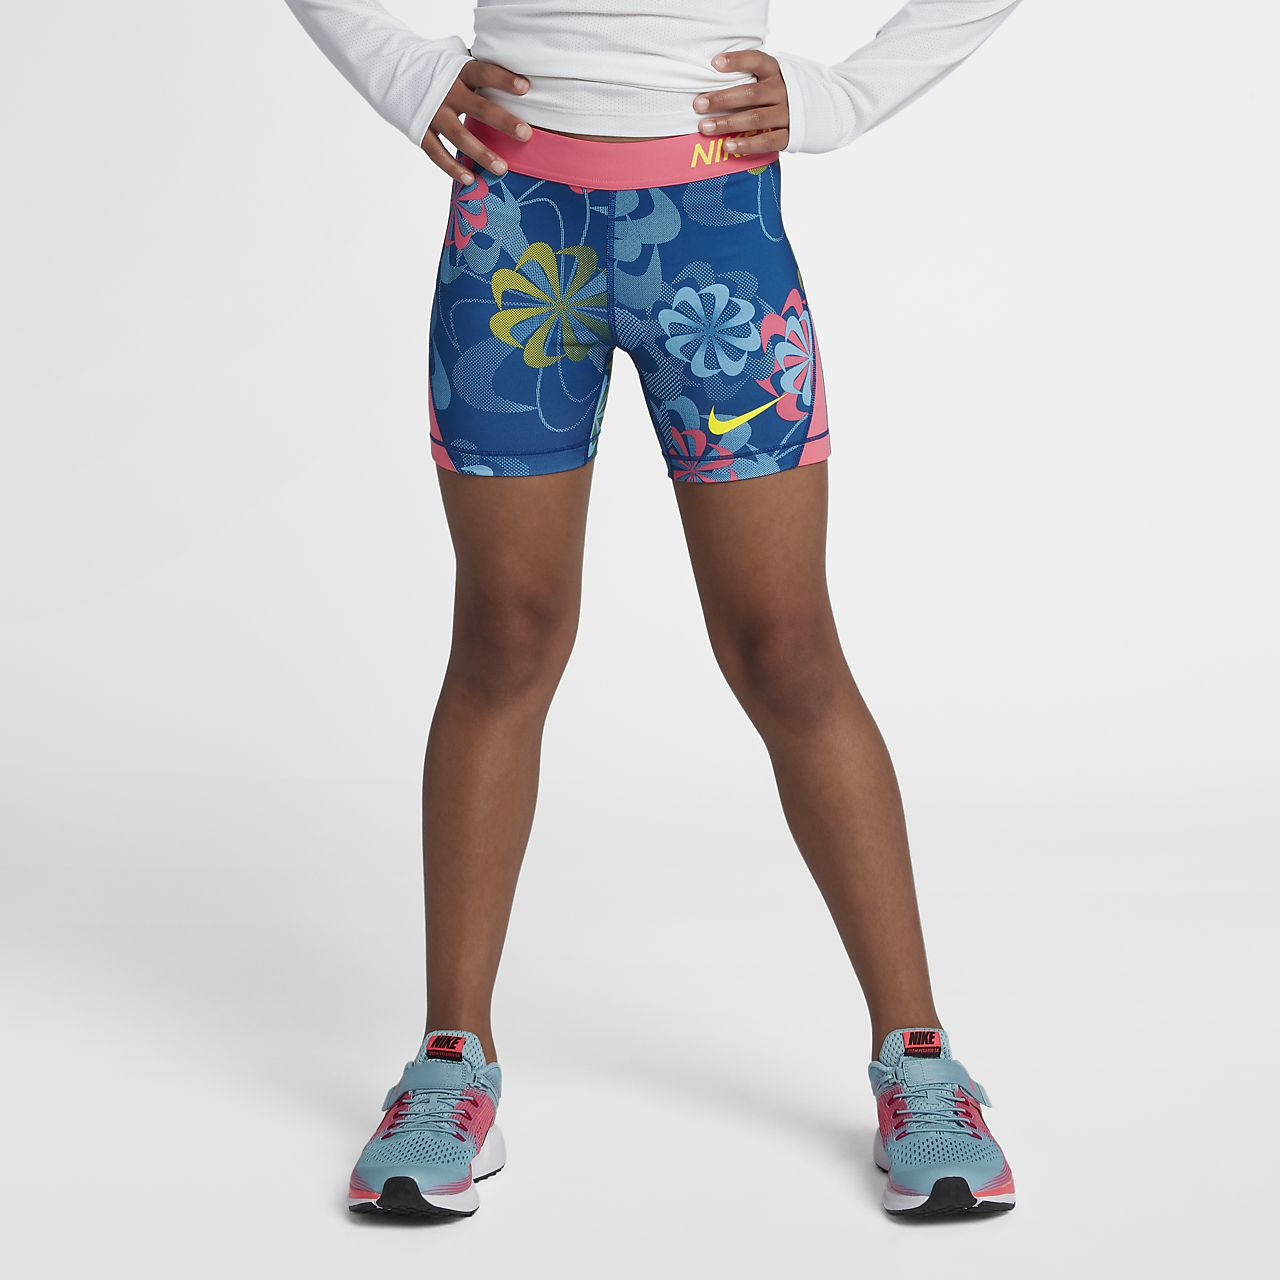 nike pro big kids girls running shorts nikecom